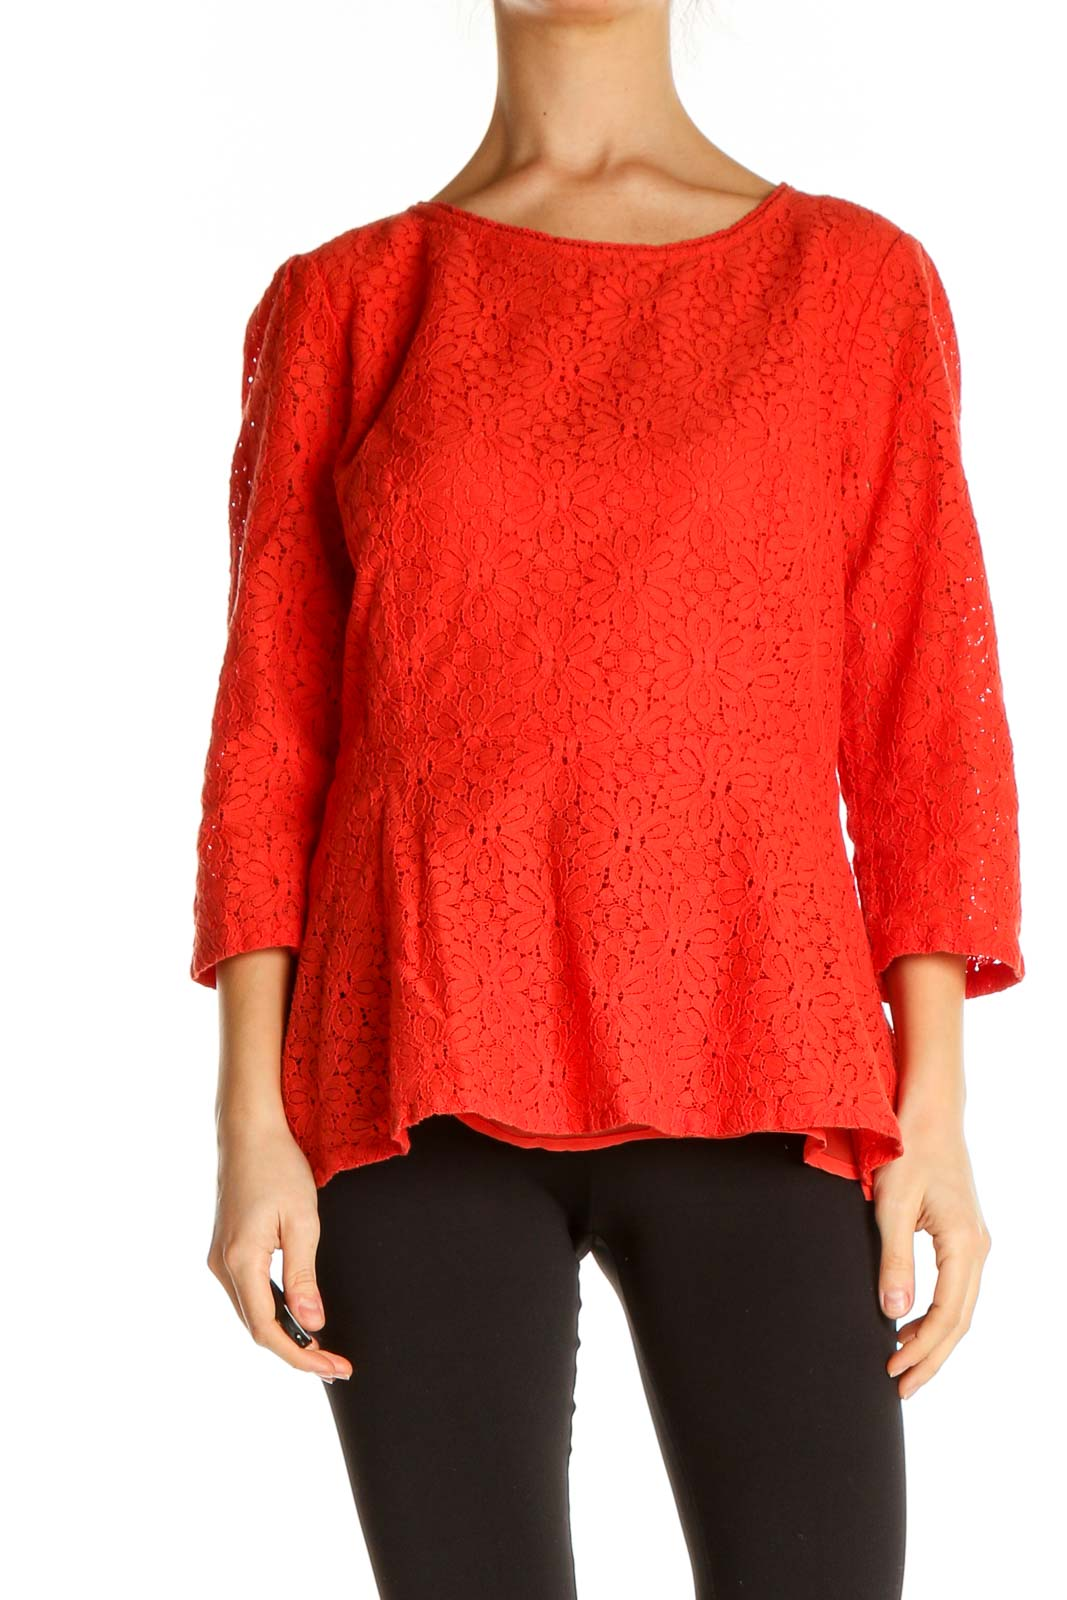 Red Textured All Day Wear Blouse Front